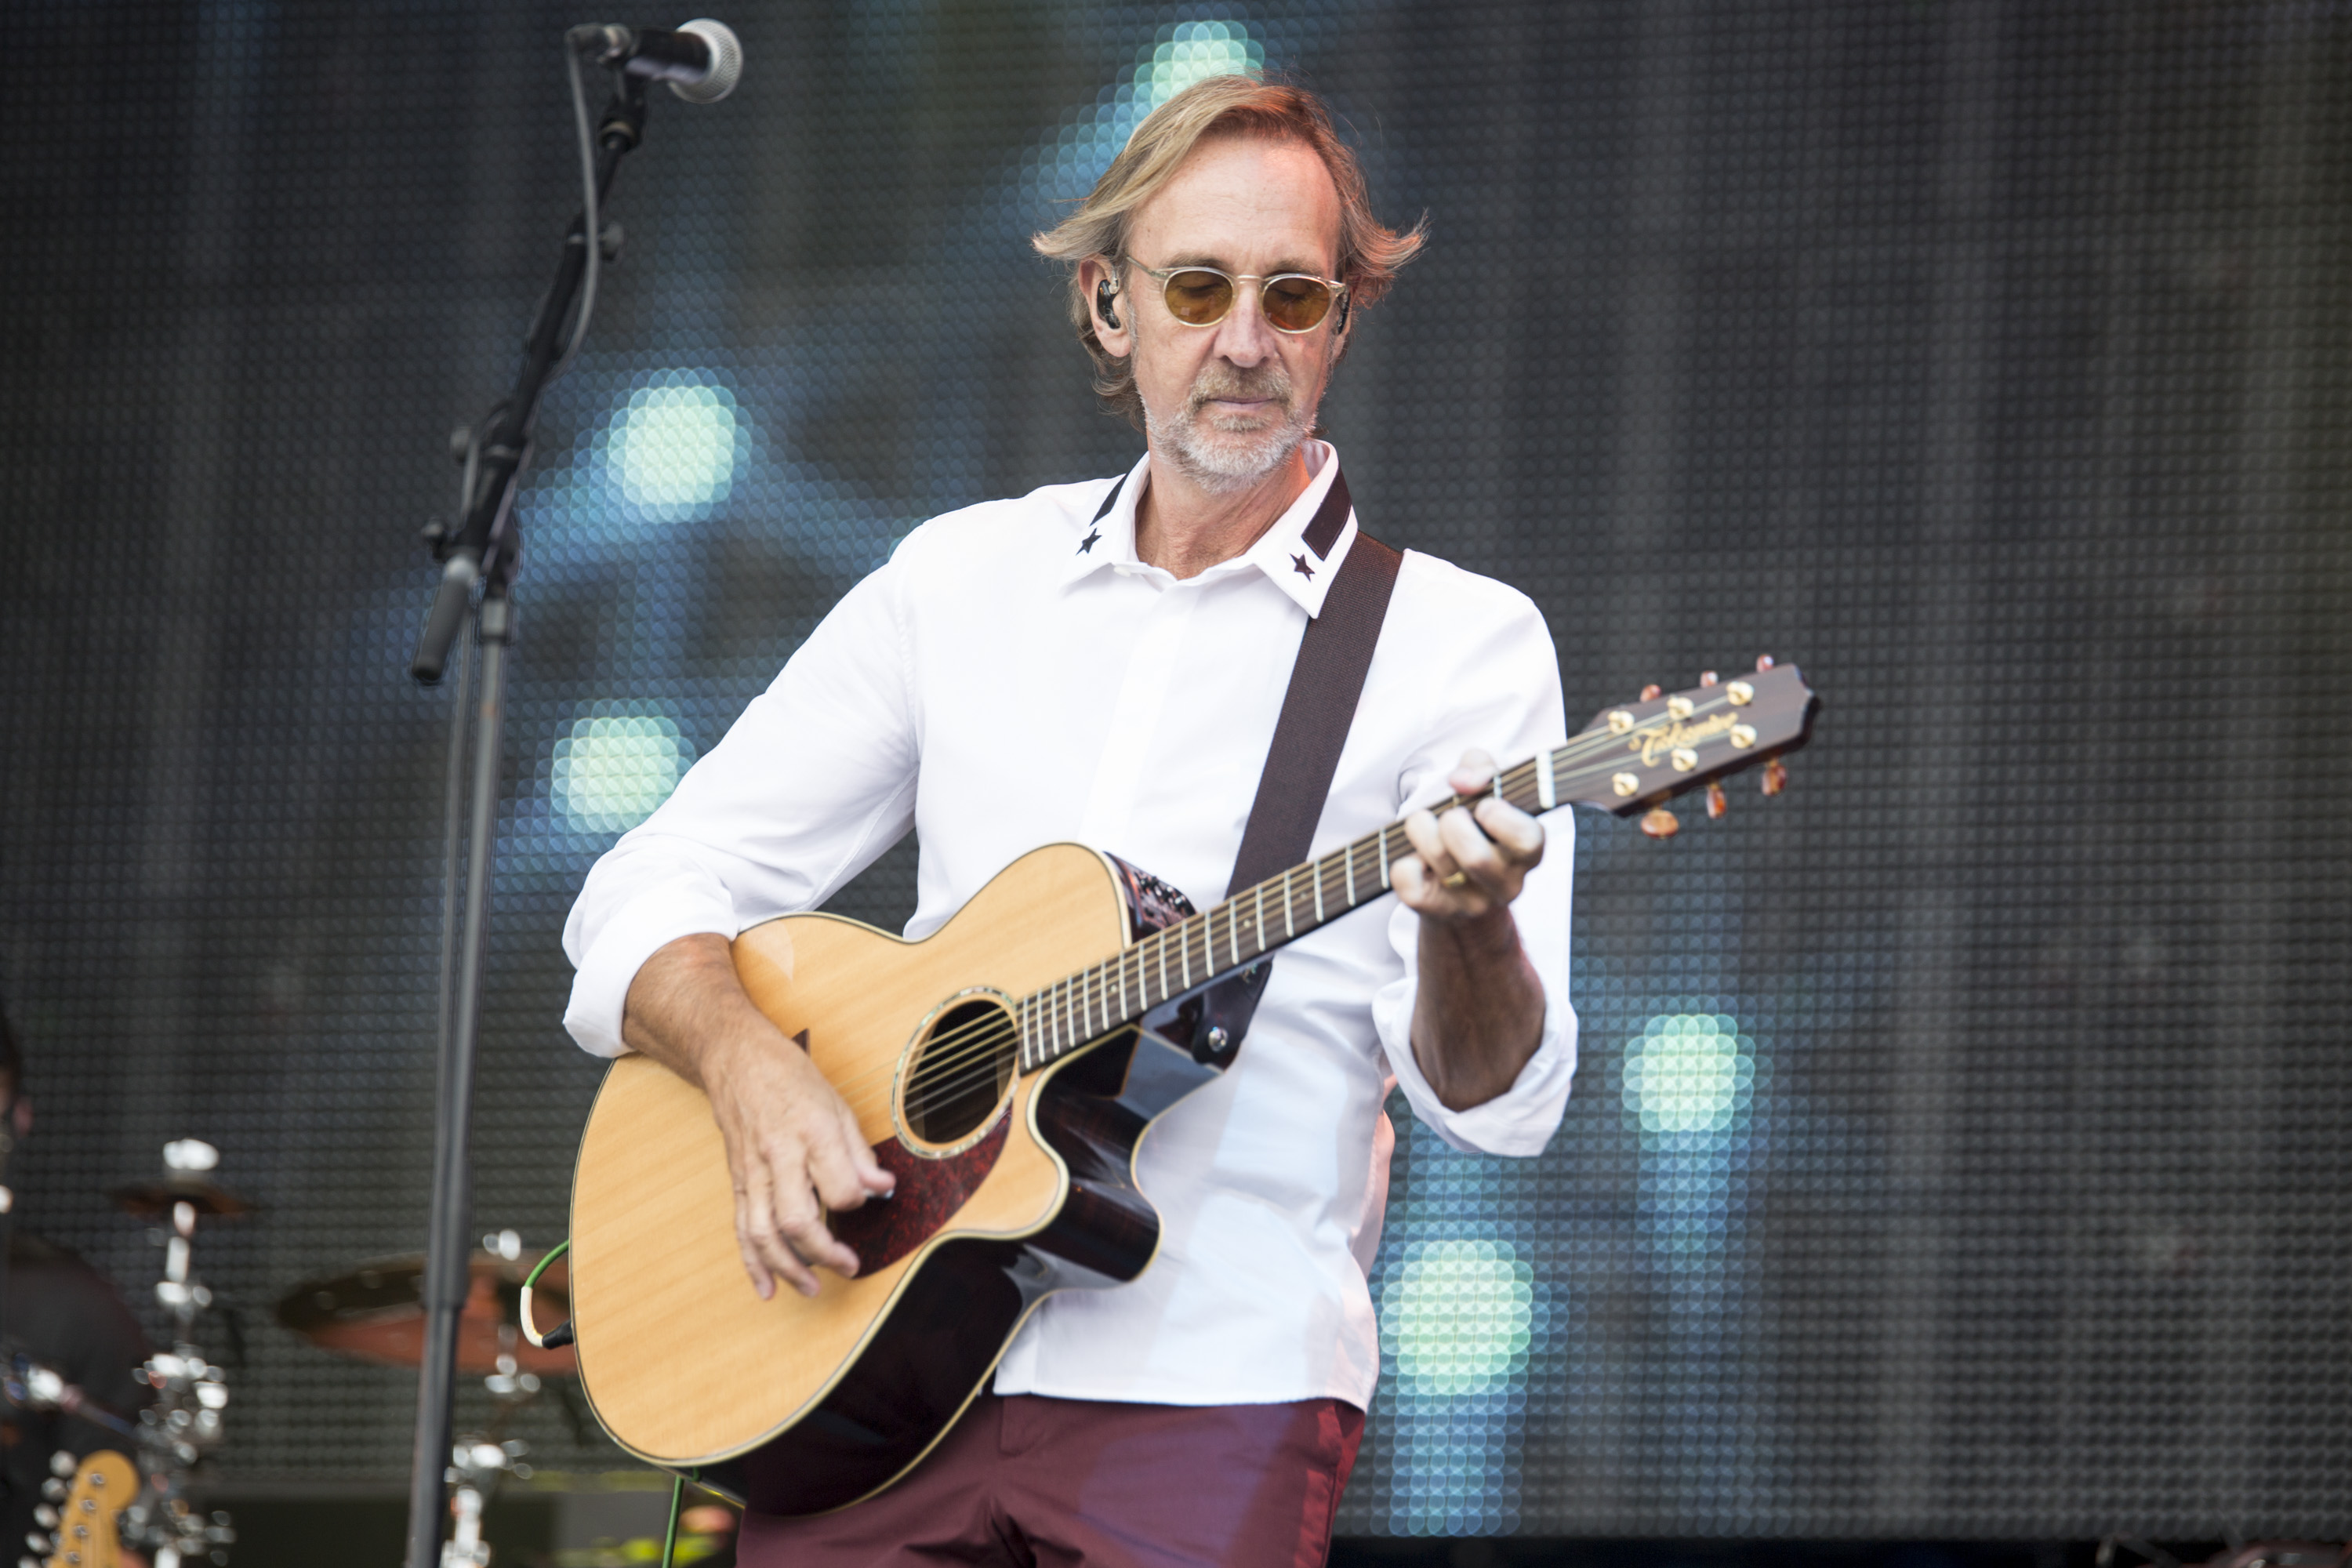 HENLEY-ON-THAMES, ENGLAND - AUGUST 16:  Mike Rutherford of Mike and the Mechanics performs on stage at Rewind South 80s Music